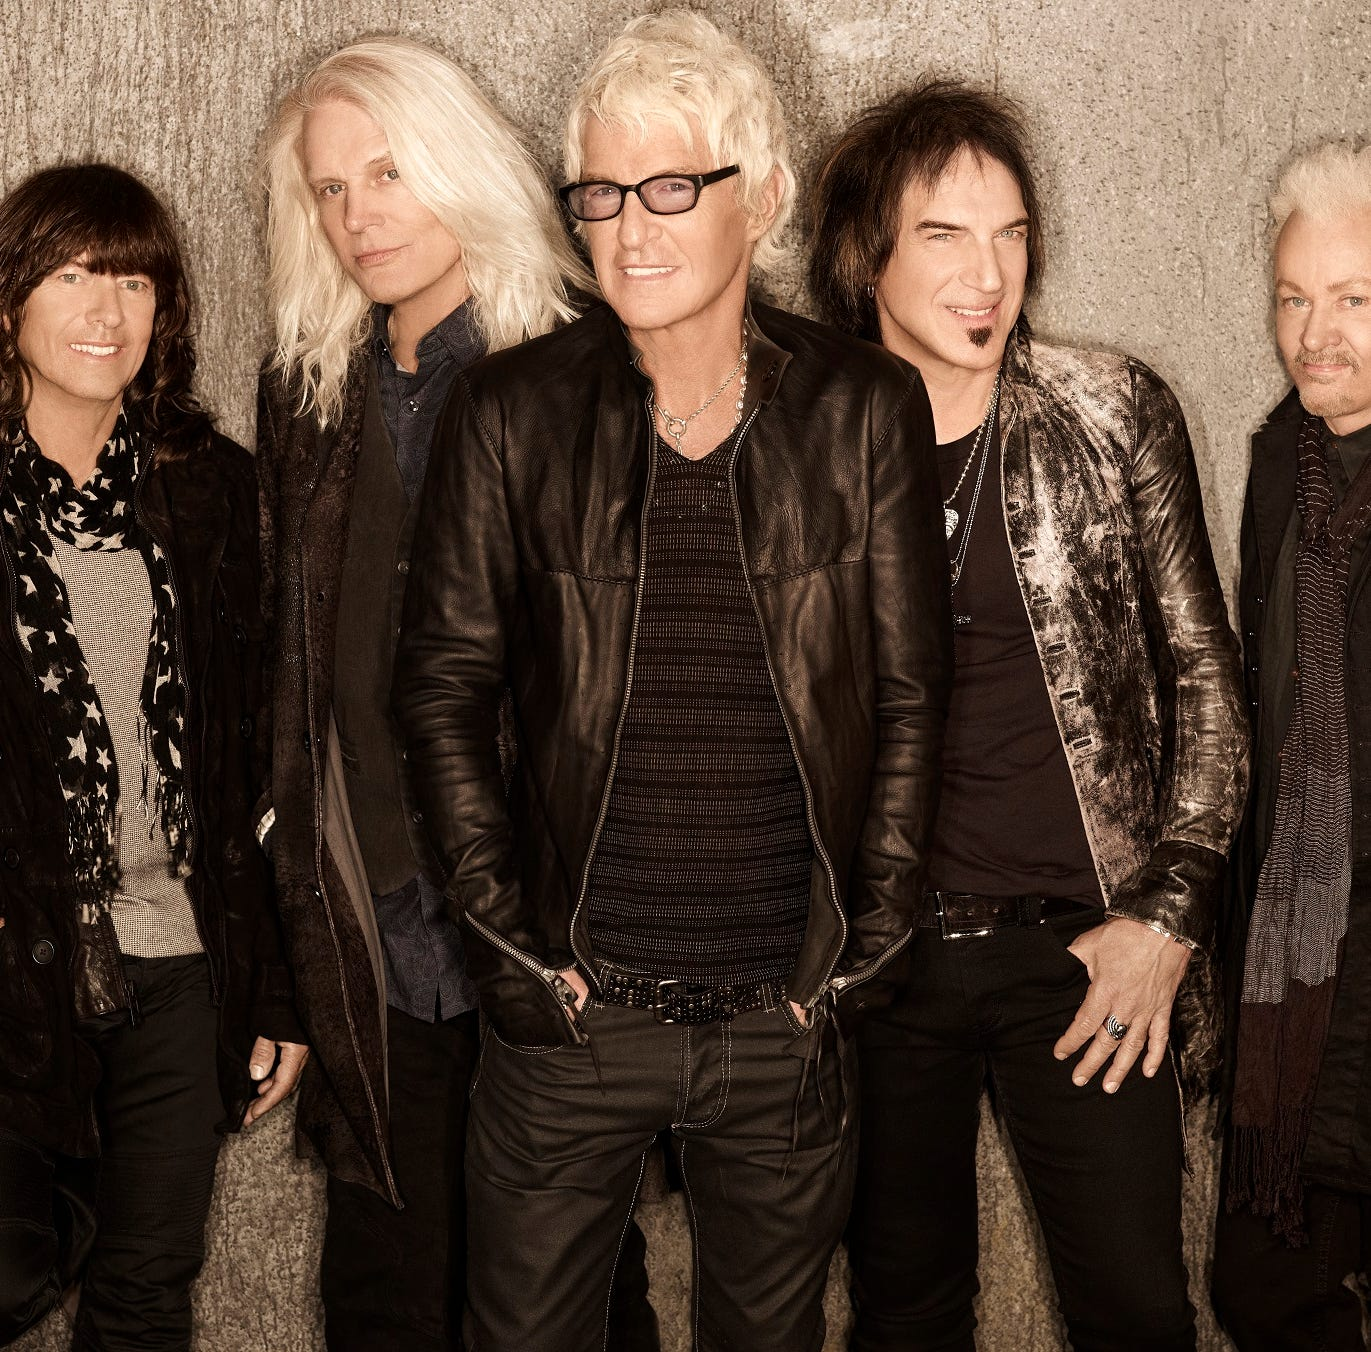 REO Speedwagon rushes to turn Thousand Oaks concert into benefit